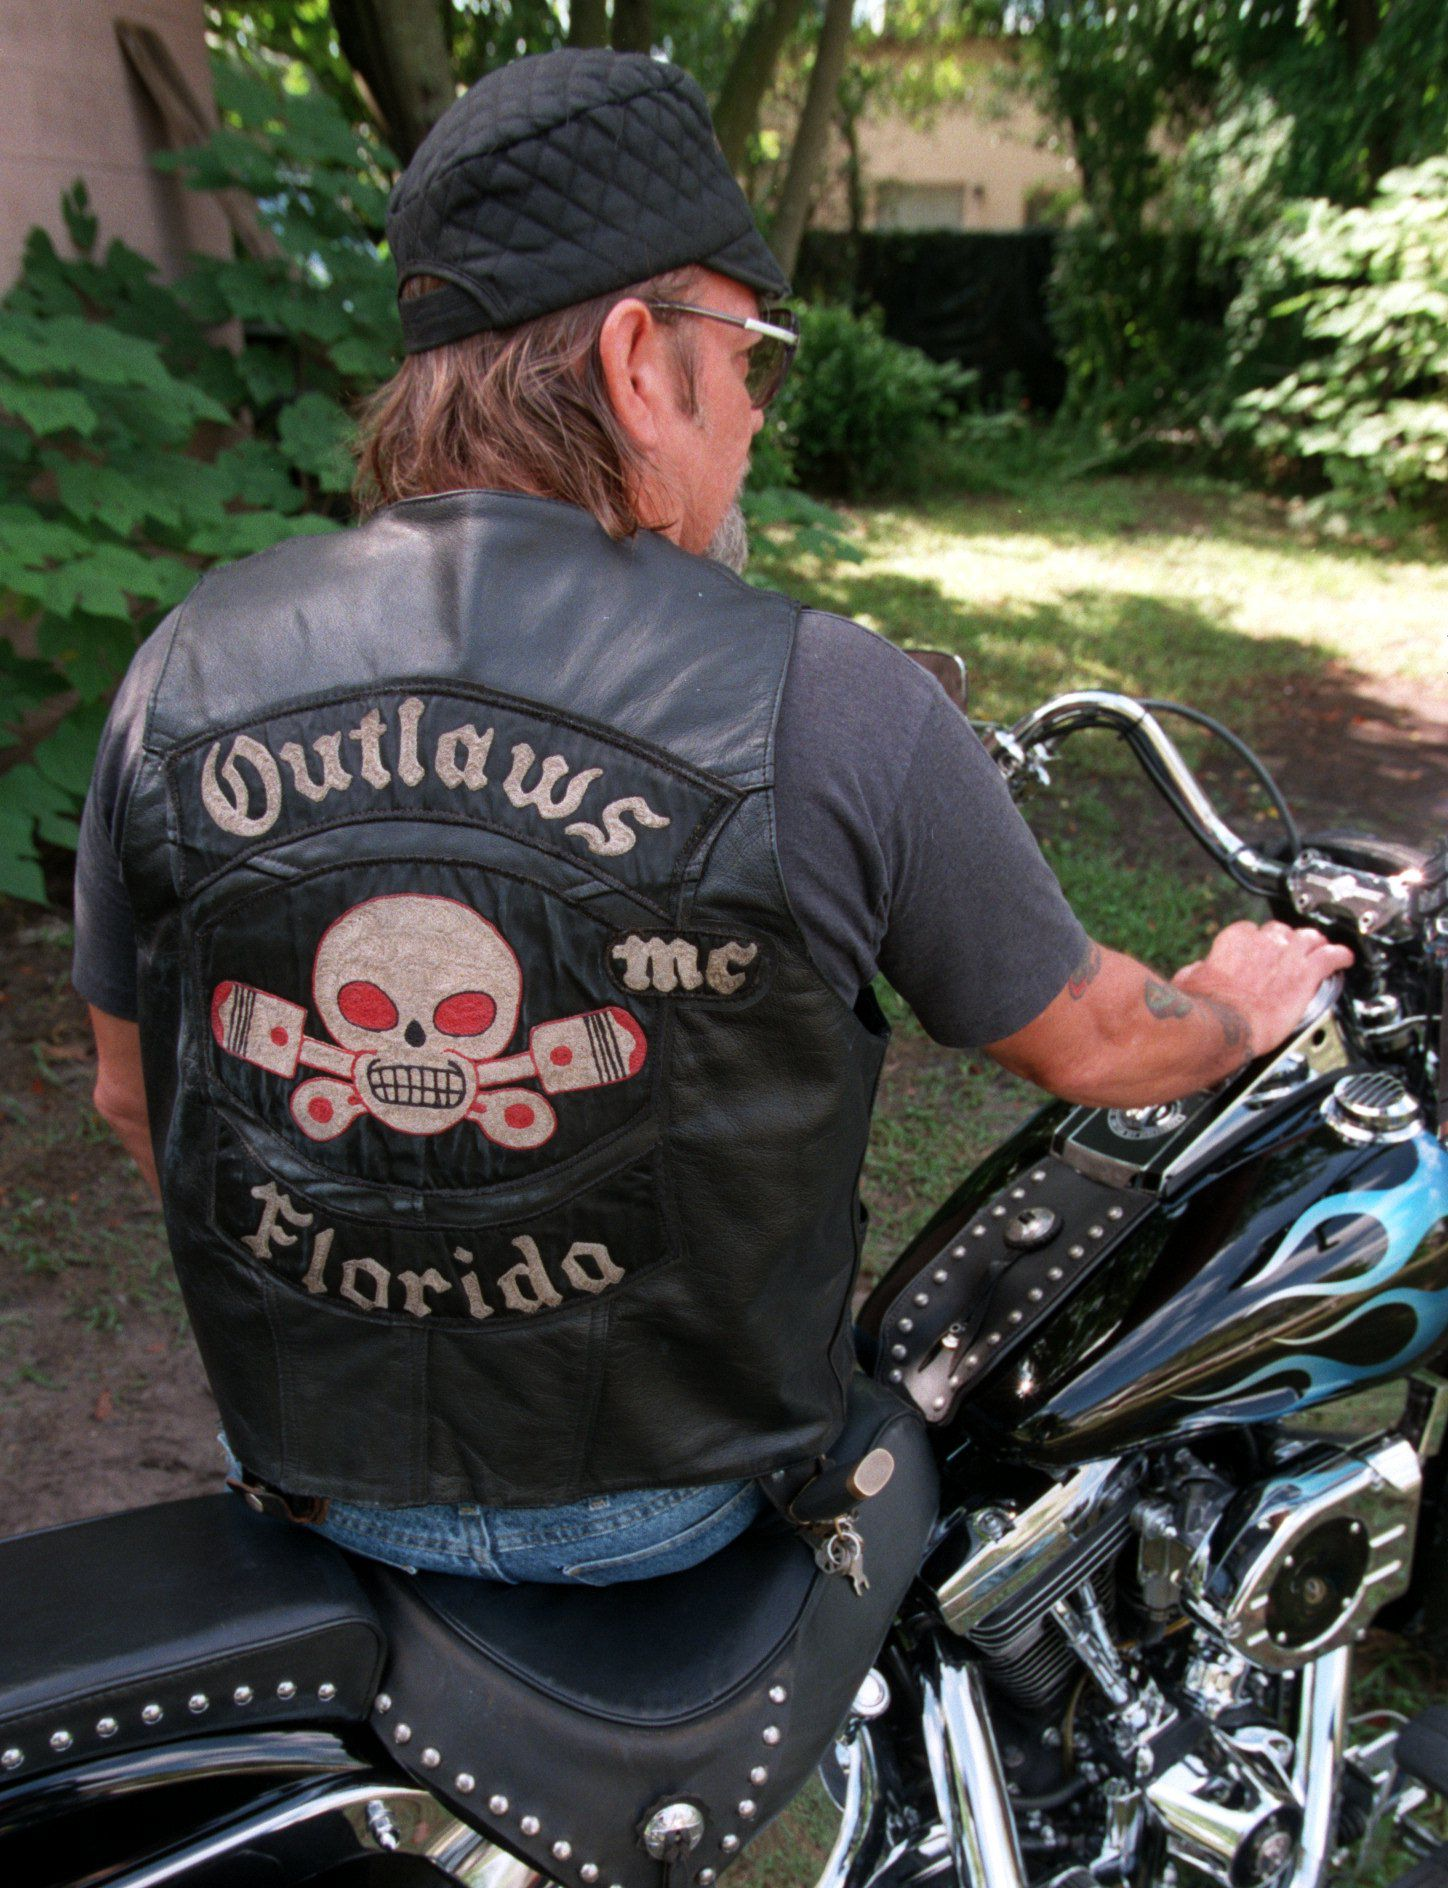 An Outlaws Motorcycle Club Leader S Assassination Adds To Tampa Bay S Bloody Biker Gang History